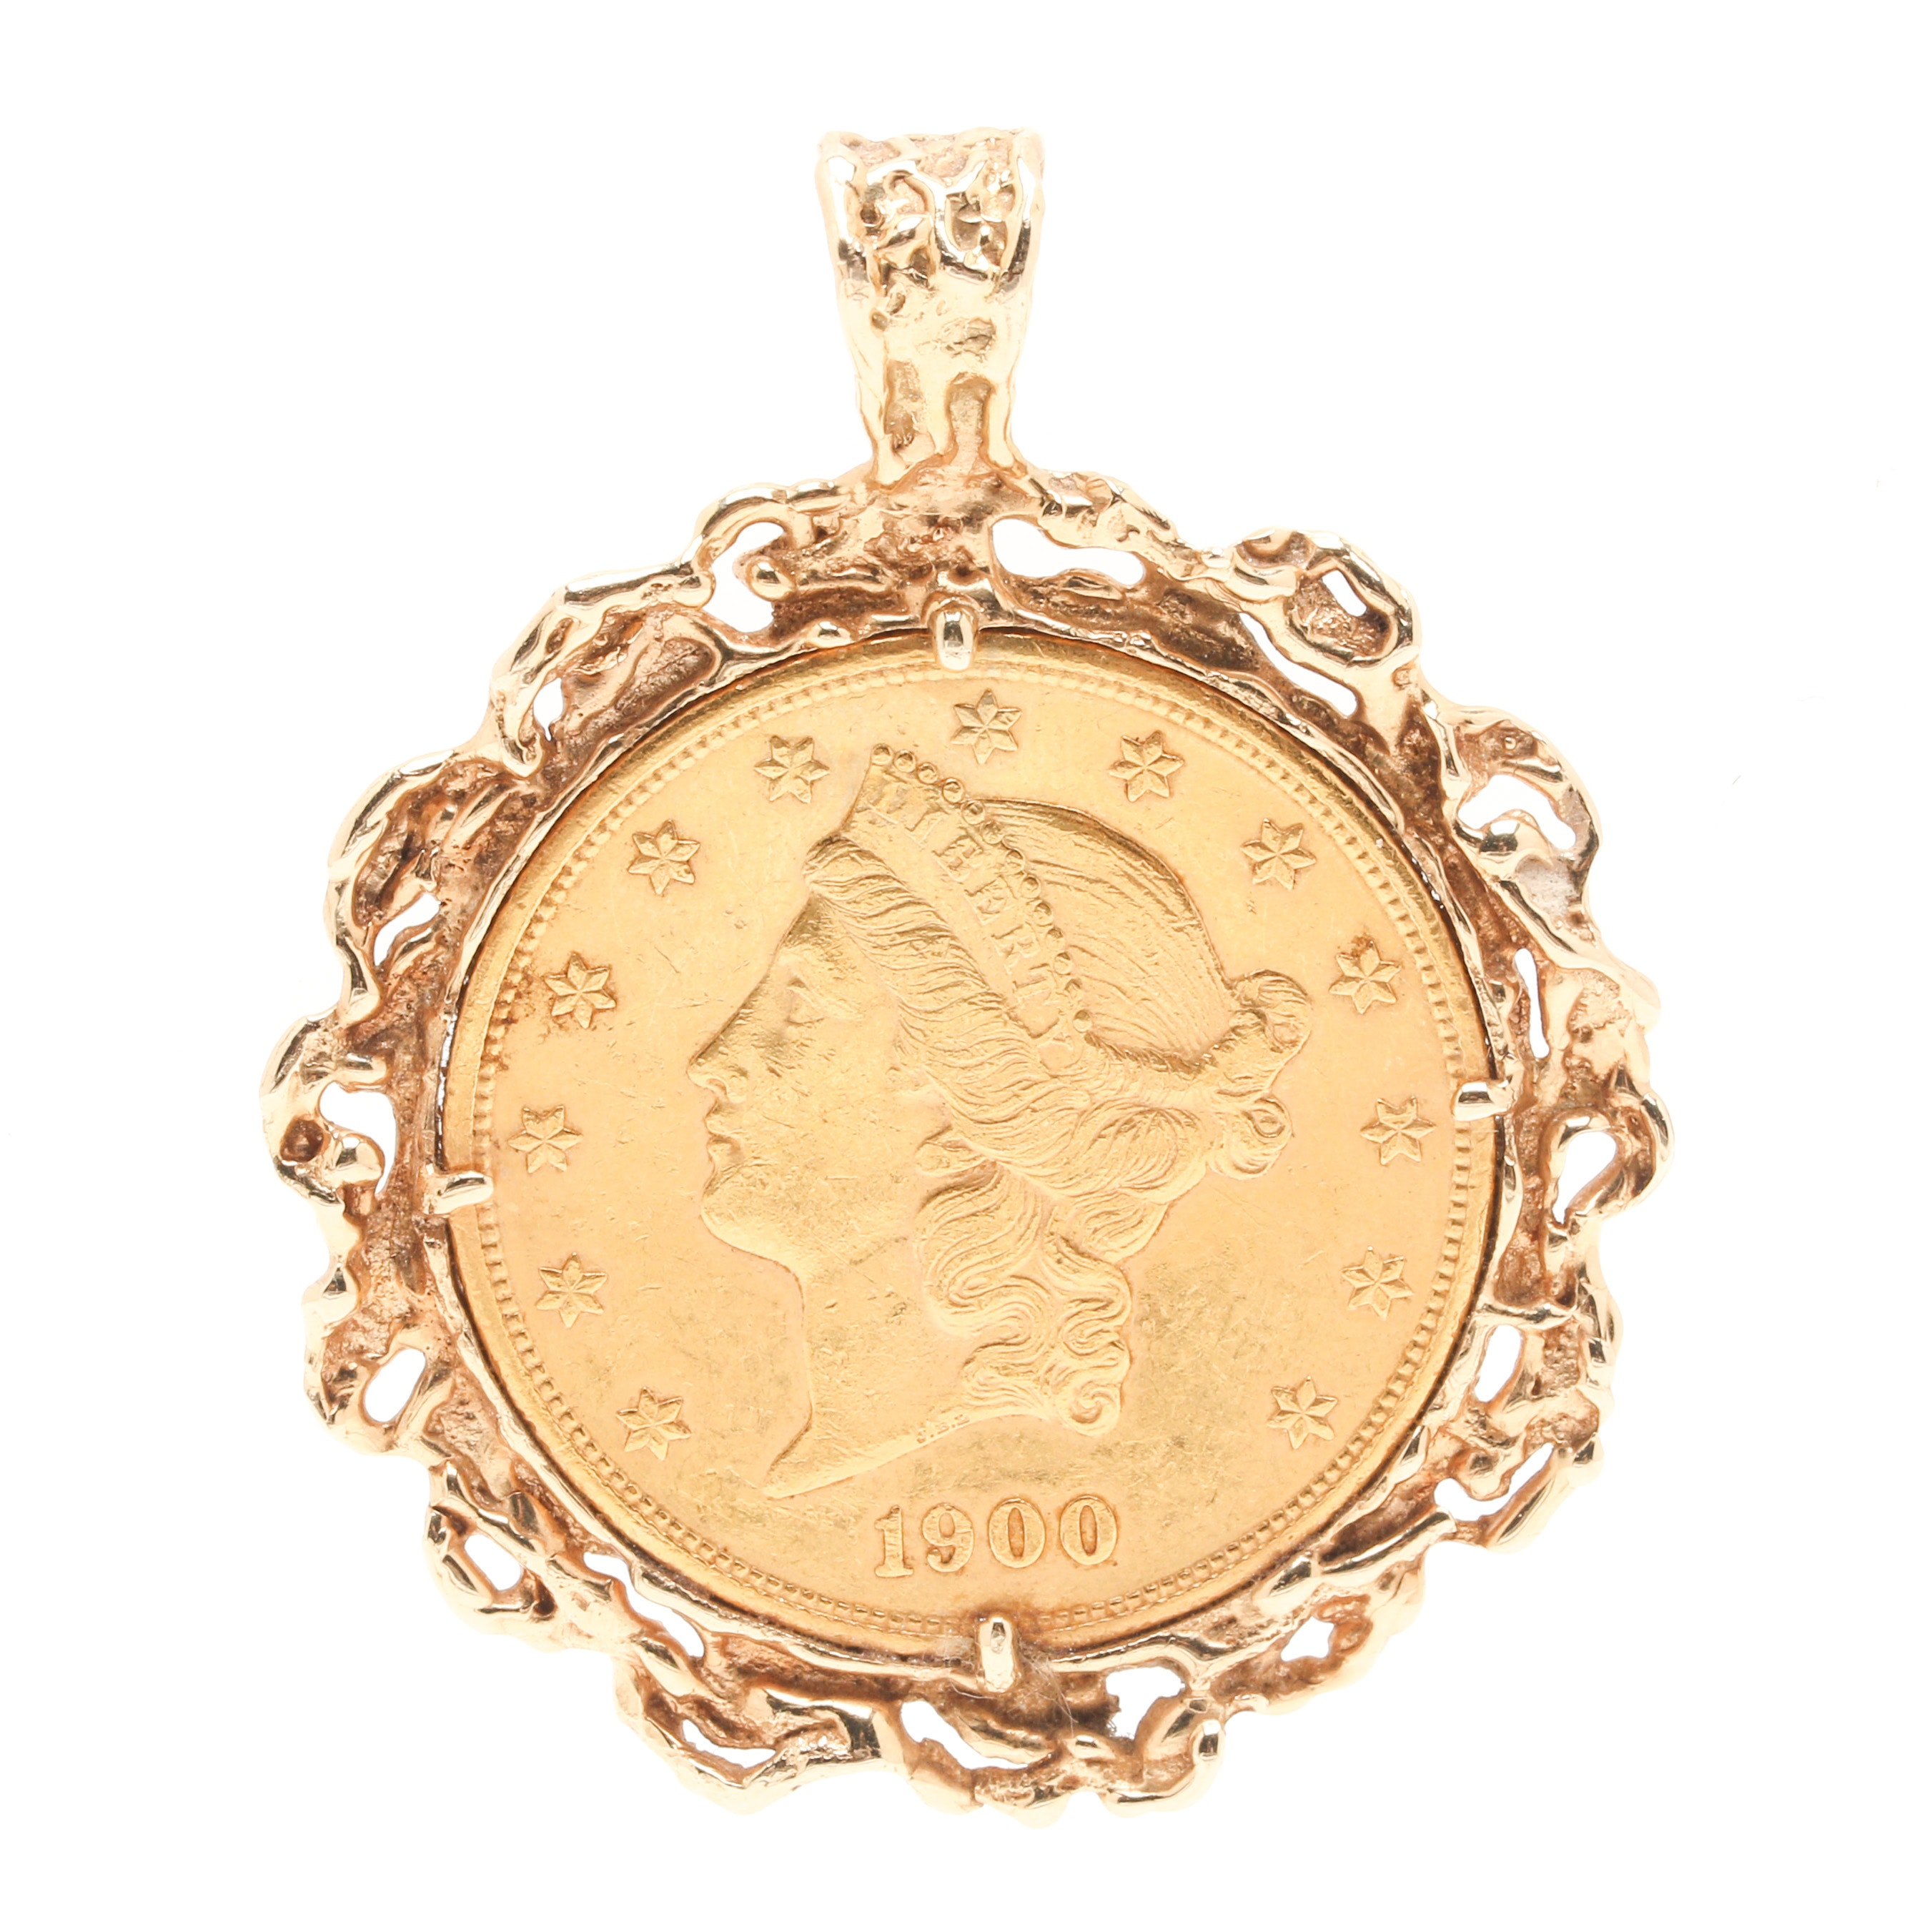 1900 James Barton Longacre 14K and 22K Yellow Gold Liberty Head $20 Coin Pendant